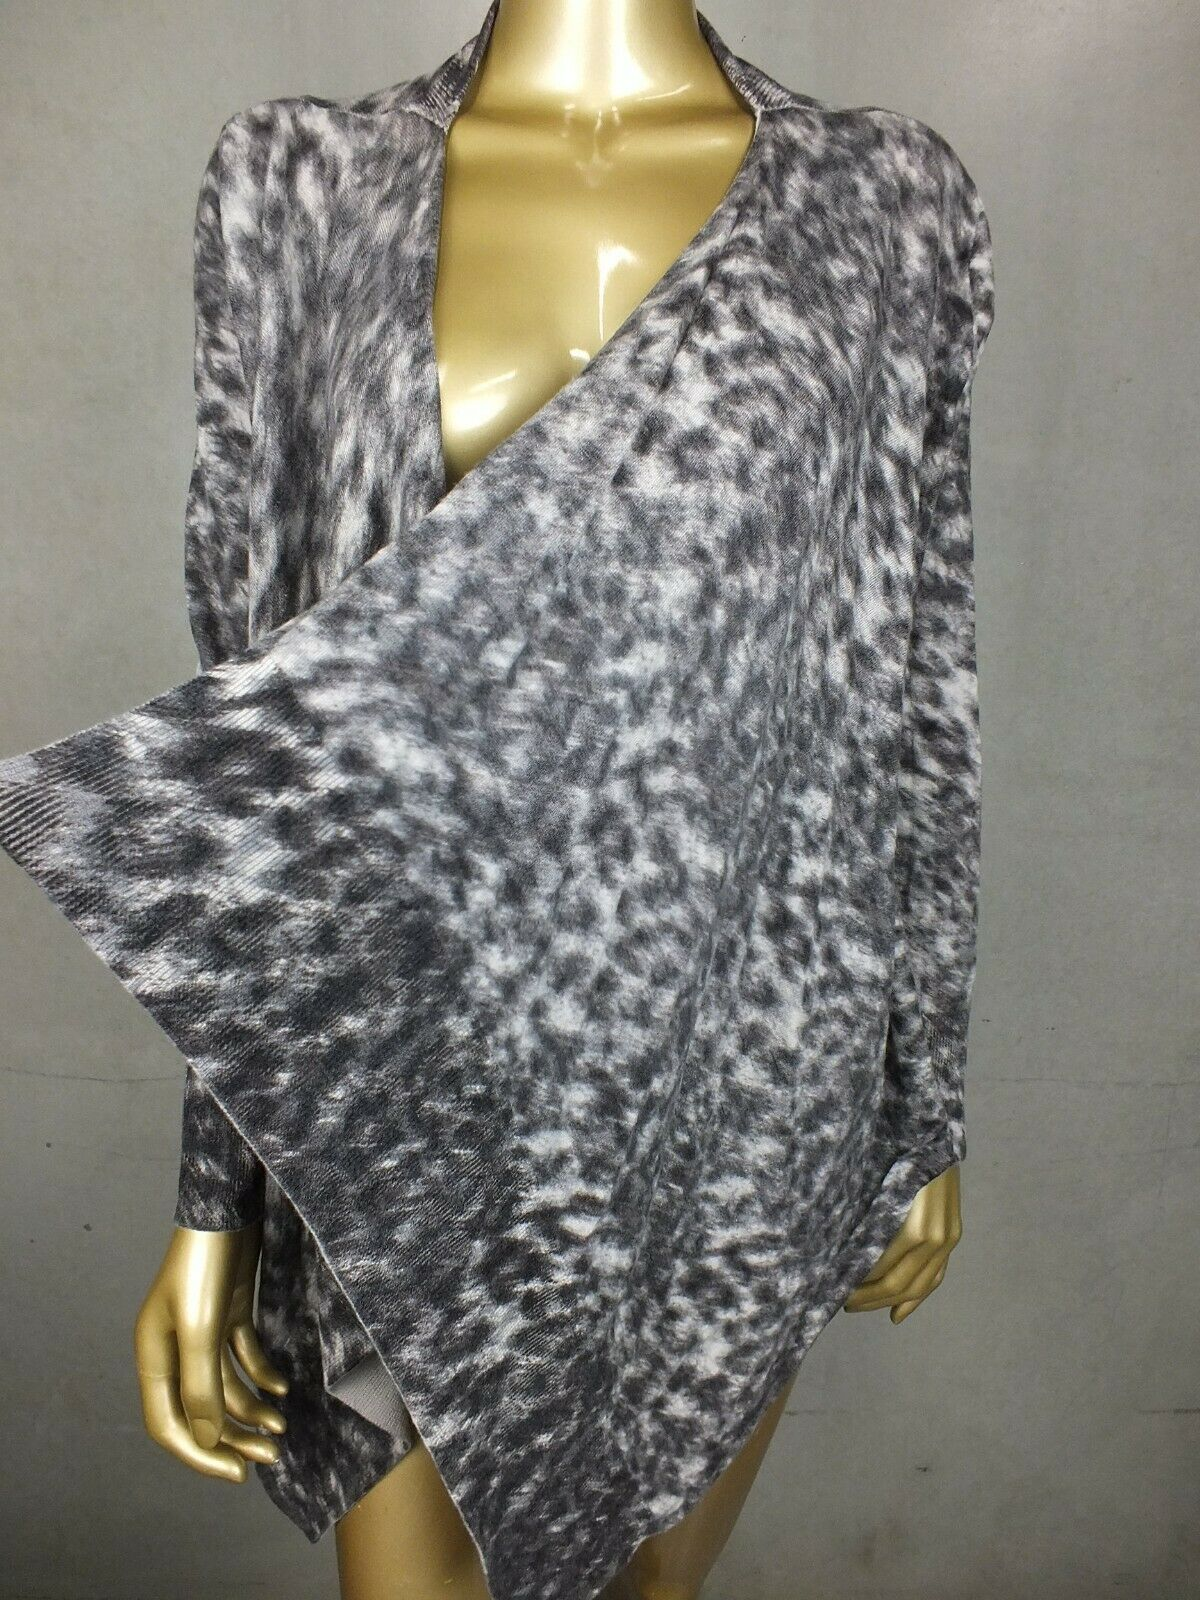 SPORTSCRAFT CARDIGAN 100% WOOL LEOPARD PRINT TOP JUMPER SWEATER - X LARGE